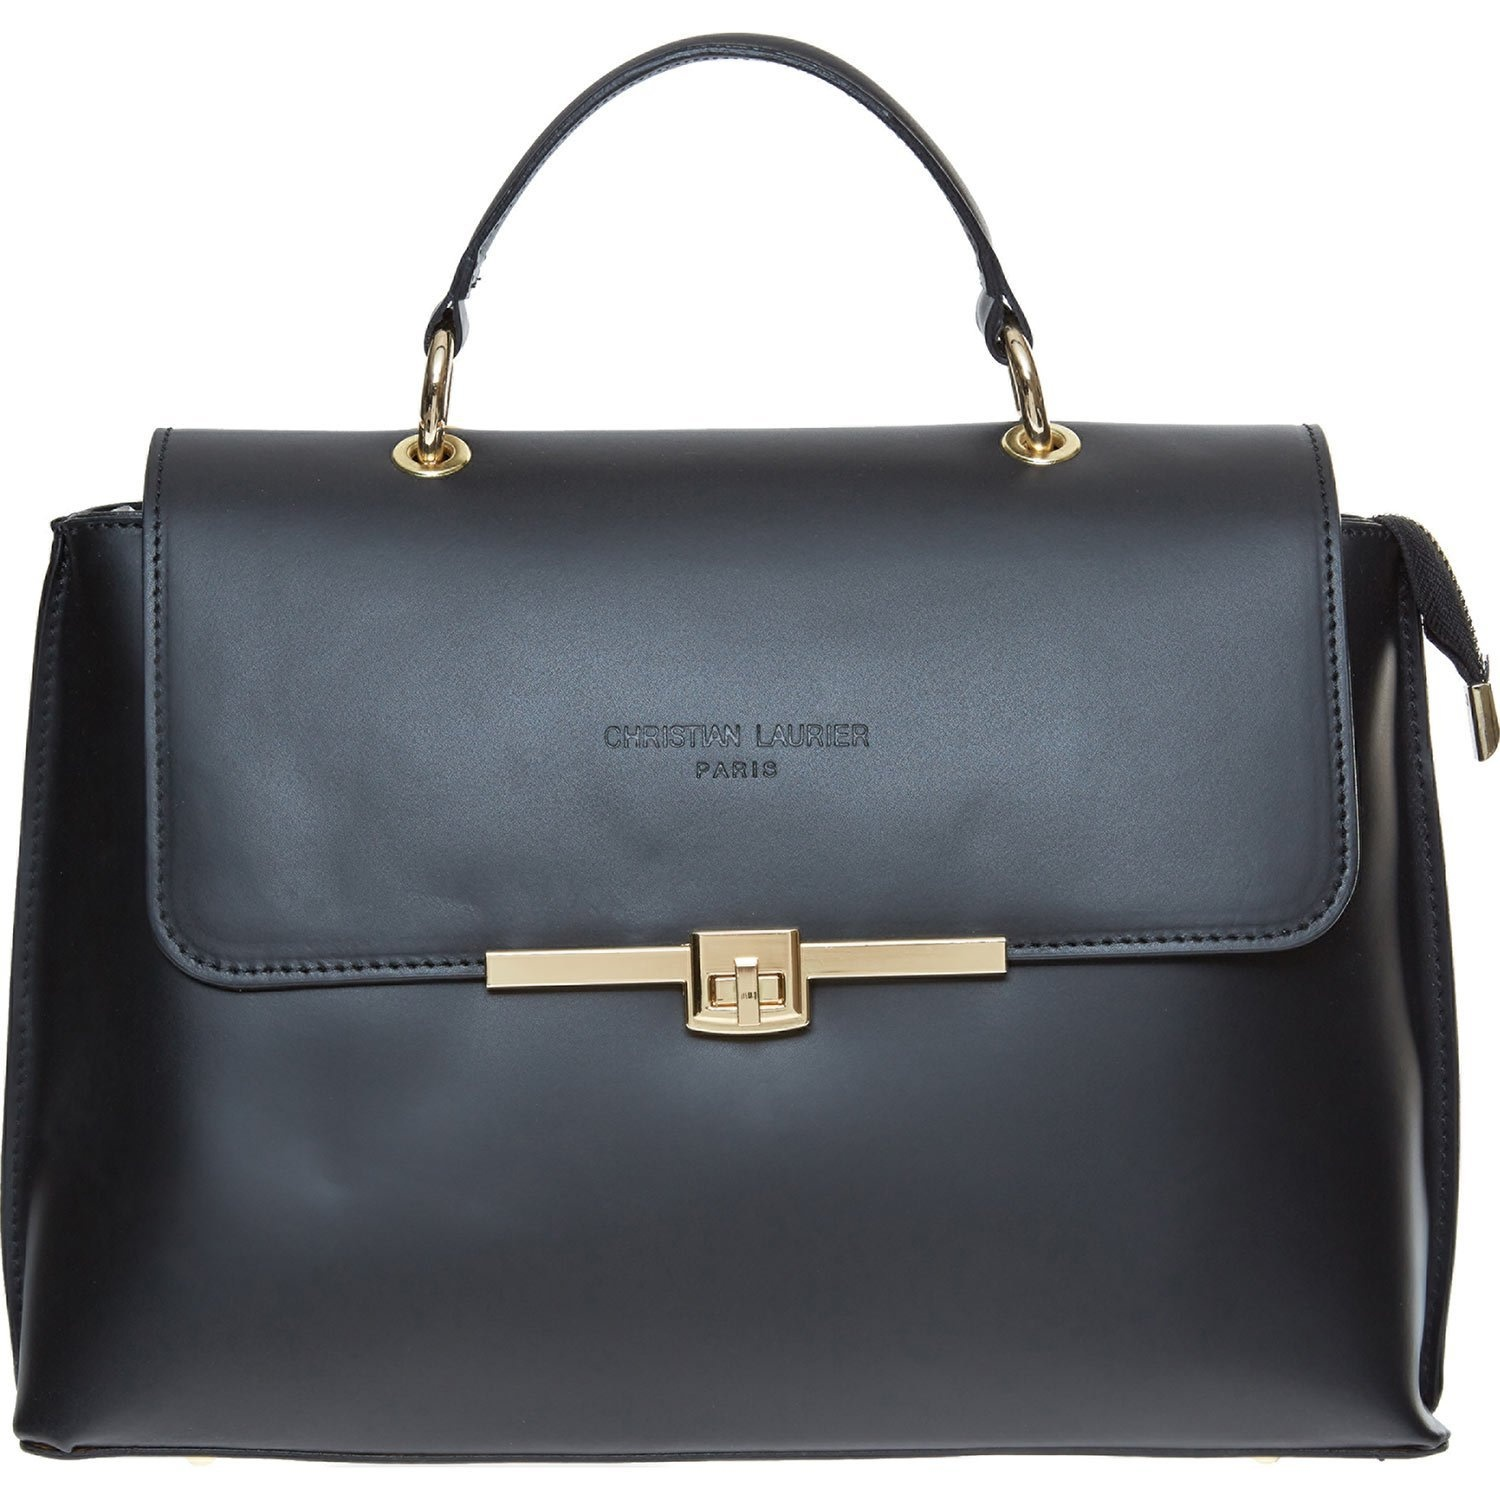 Womens Christian Laurier Black Leather Handbag (Christian Laurier) by New  Fashion Deal - Shop Online for Bags in Australia 5eeae6f518e64